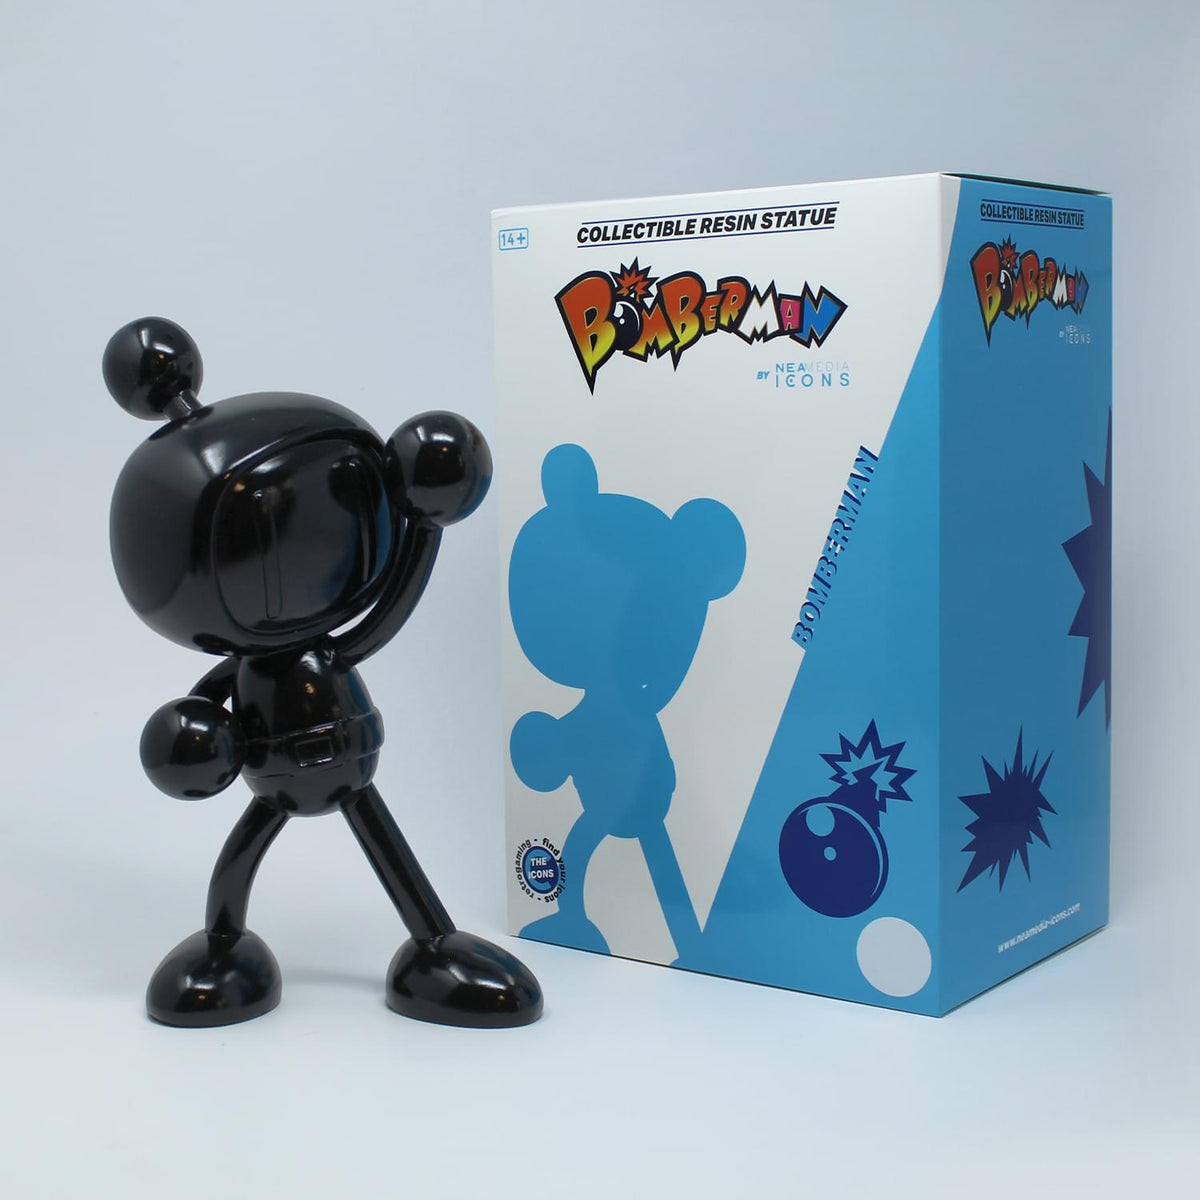 Bomberman Mini Icons 9.8 Inch Collectible Resin Statue | Black